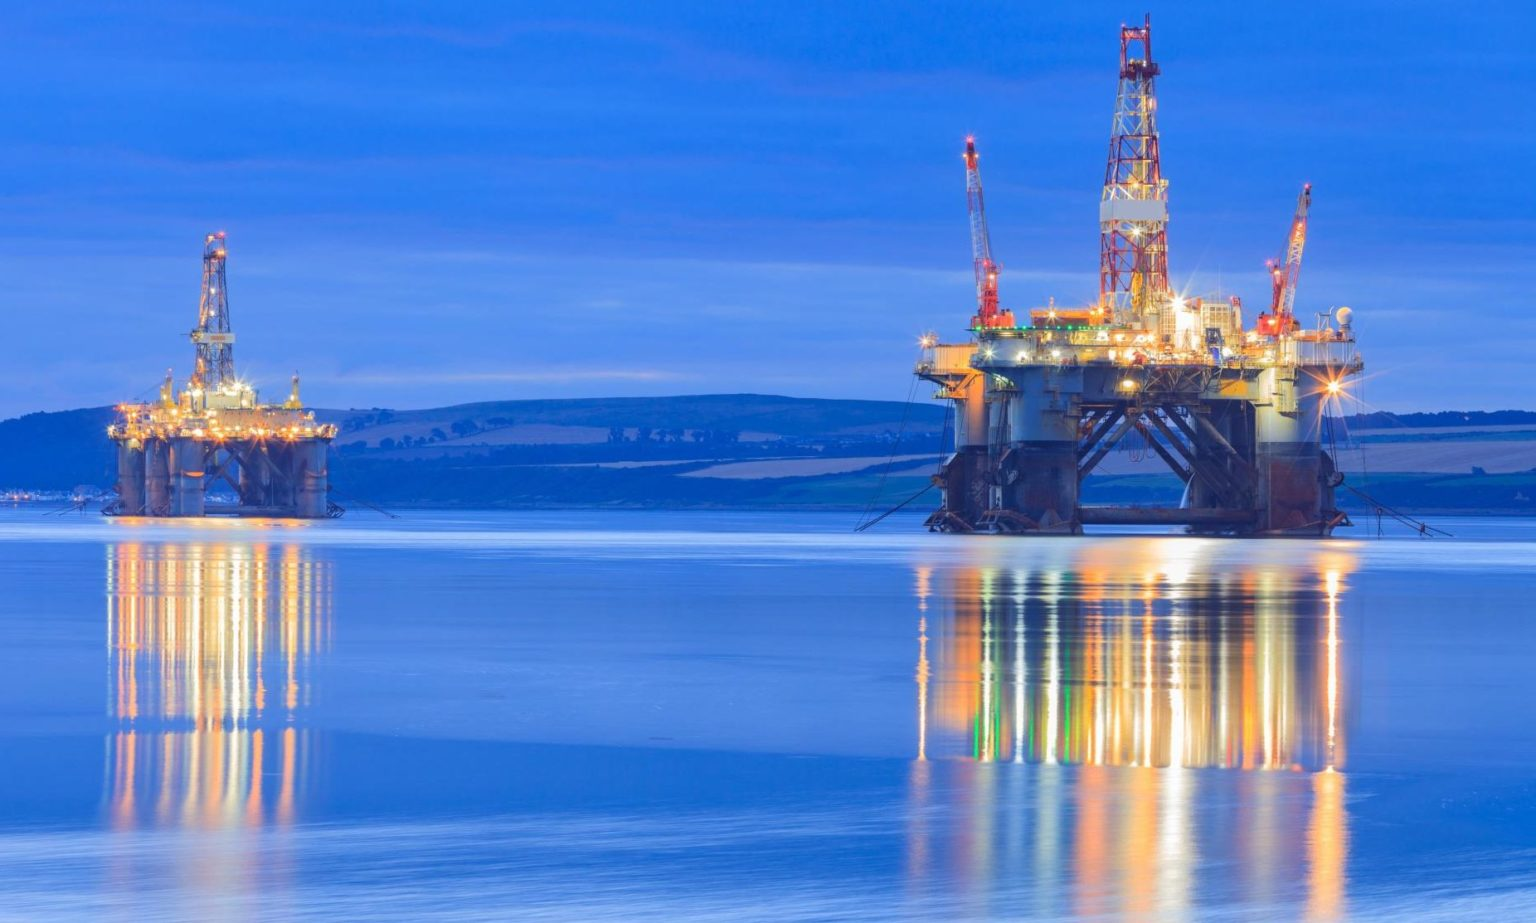 Plans launched to place Cromarty Firth at heart of 'green hydrogen revolution'